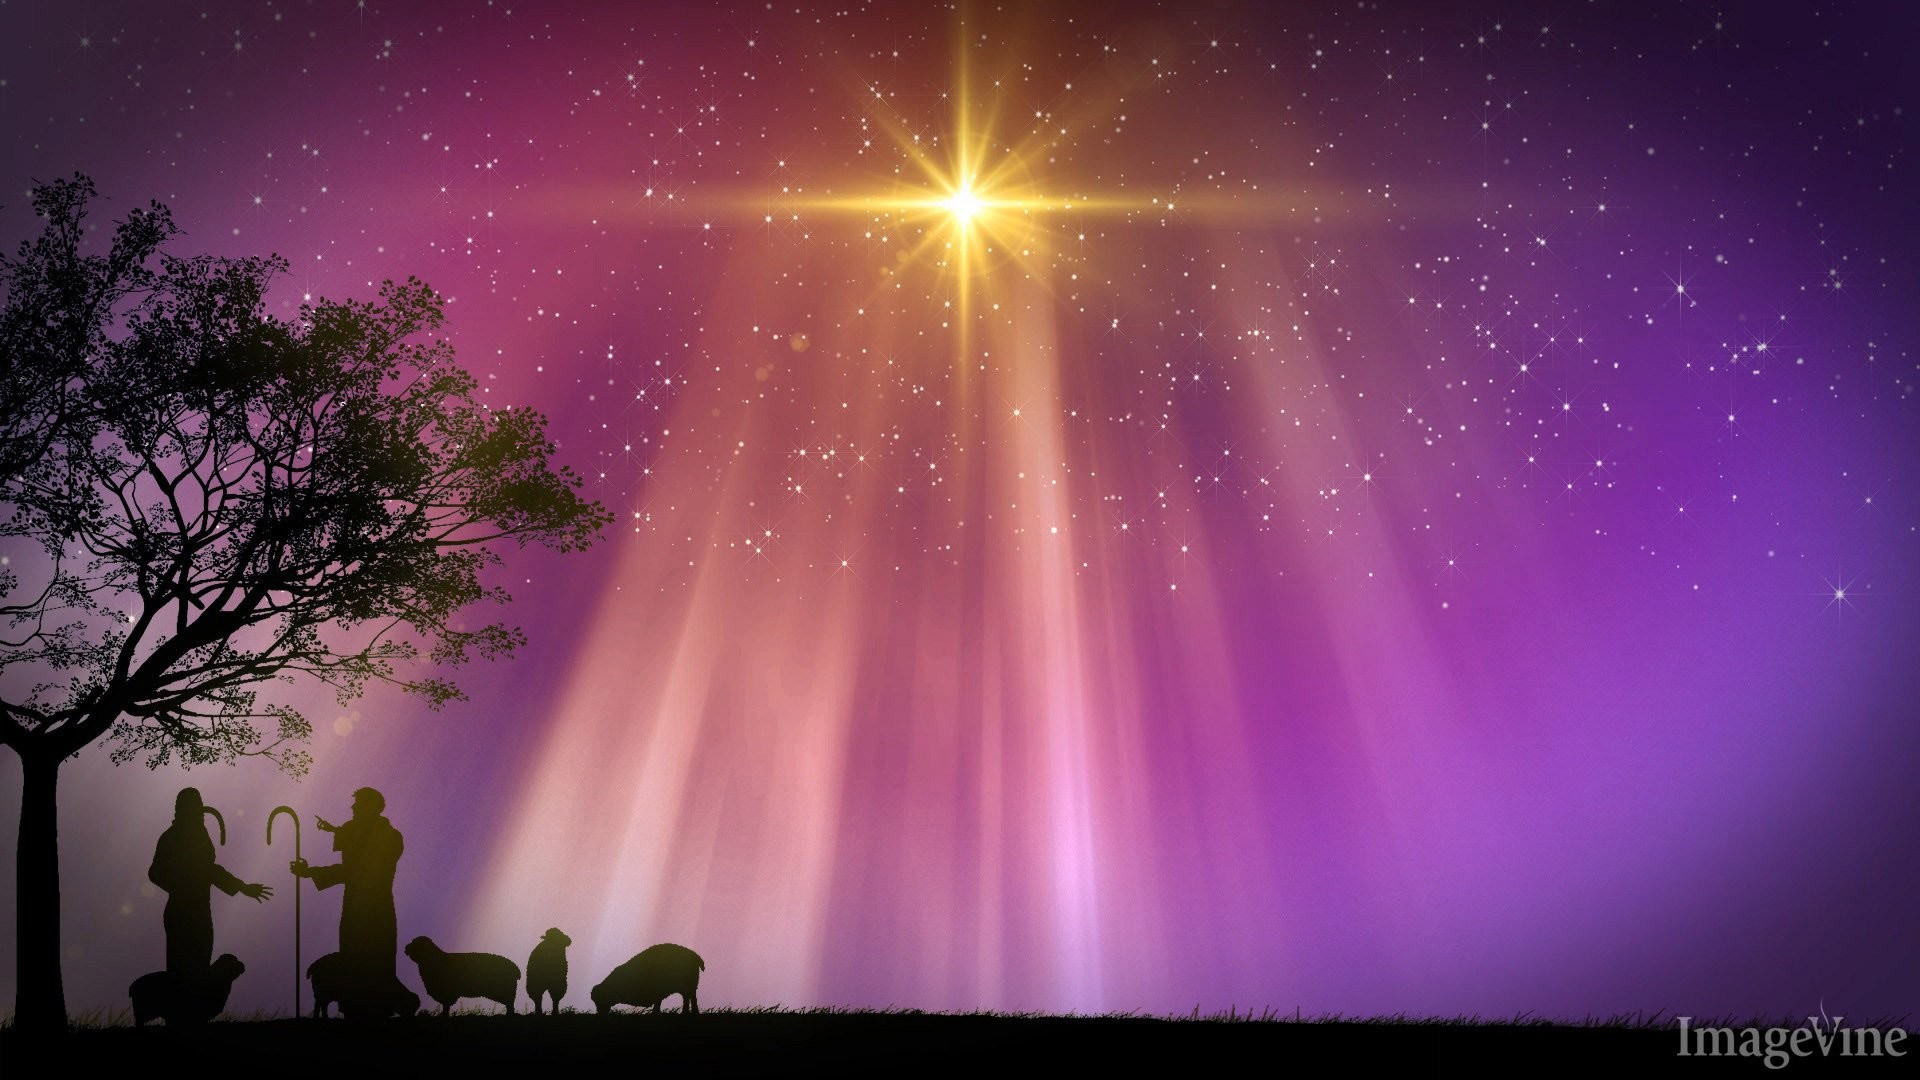 Purple christmas backgrounds 45 images 1920x1080 christian christmas powerpoint backgrounds shepherds nativity star appears thecheapjerseys Gallery